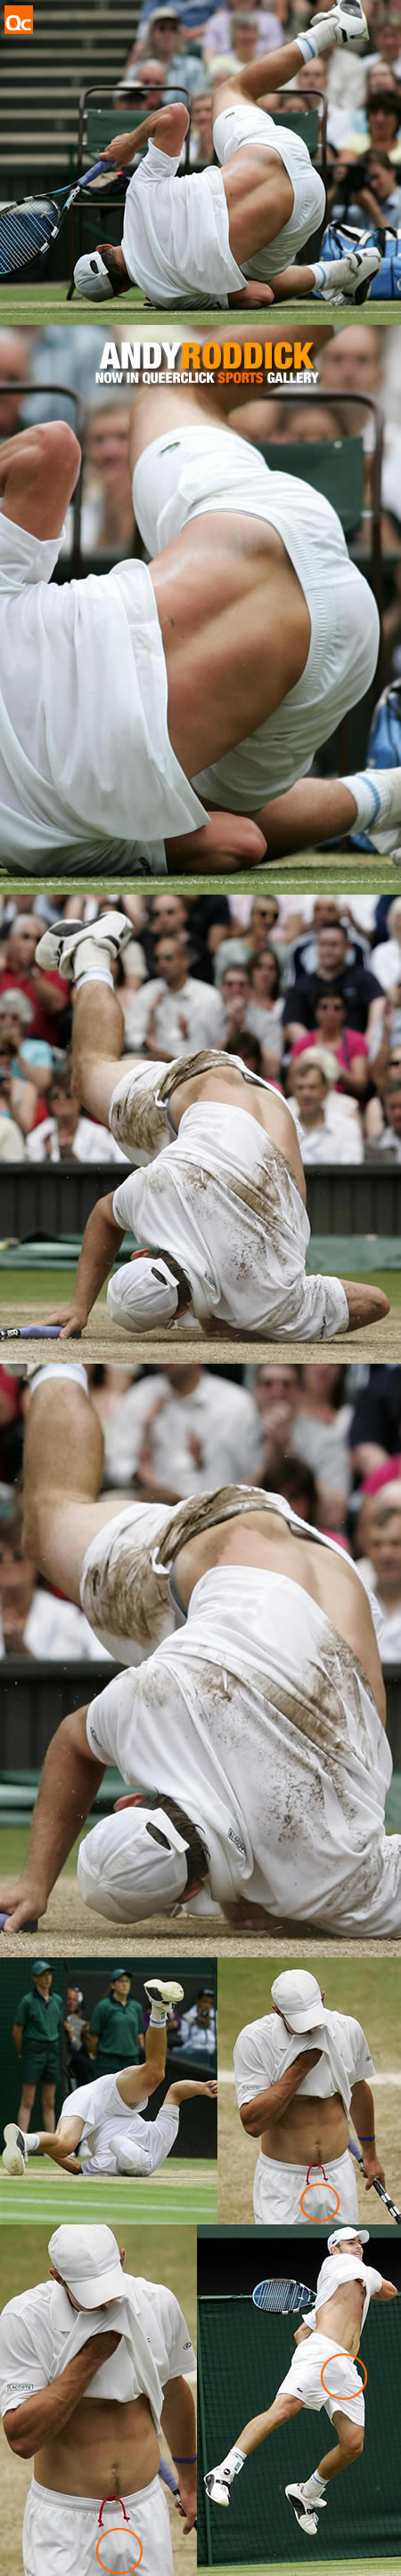 Andy Roddick pulls off some hot moves on the court!